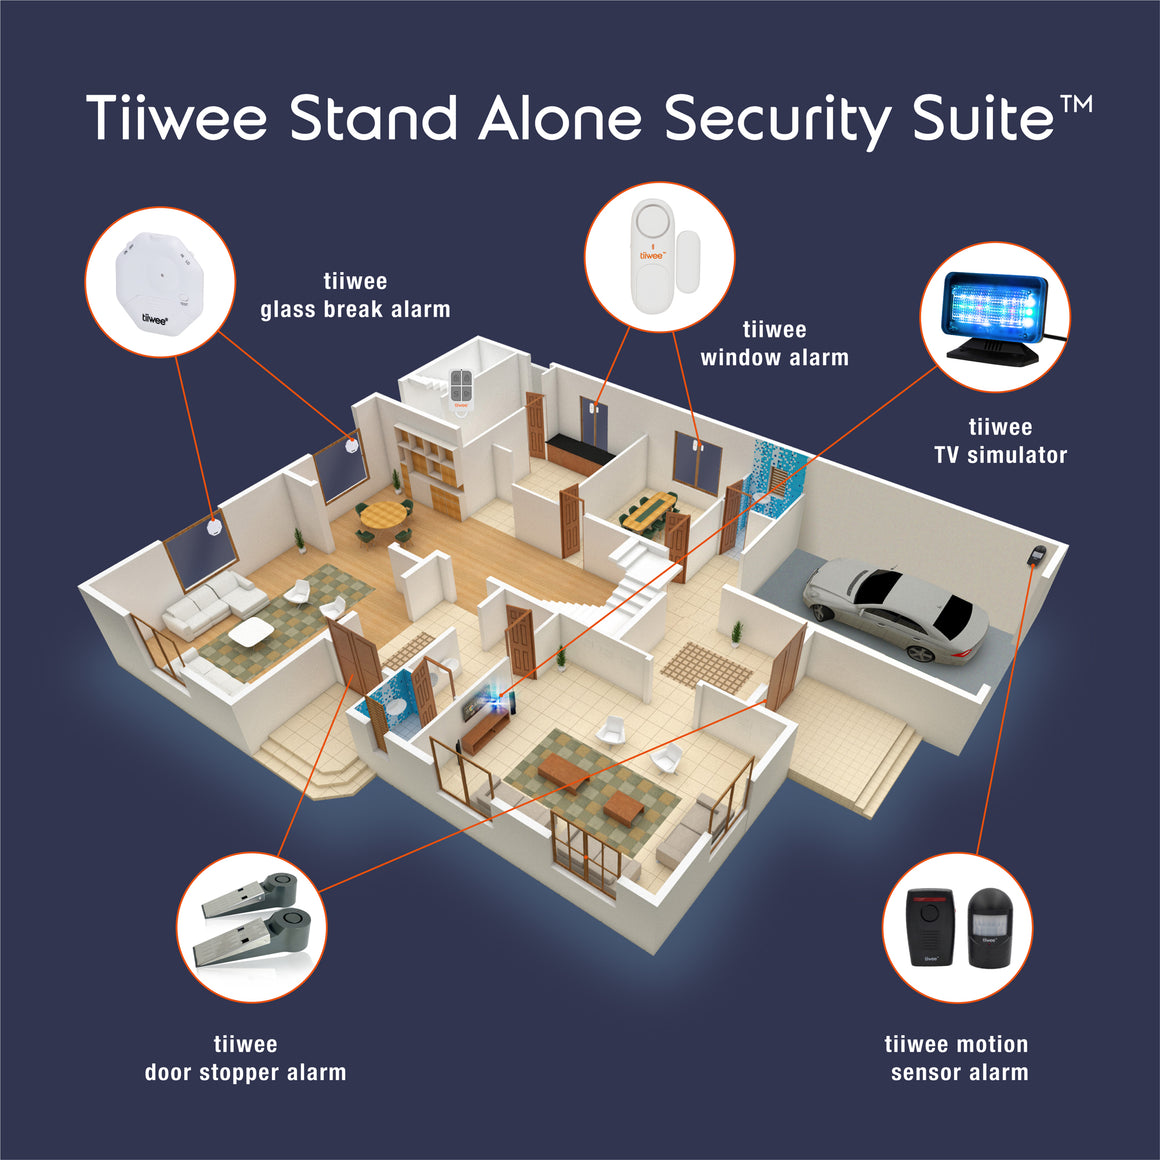 Collections Low Cost Burglar Alarm For Boats Tiiwee Standalone Home Security